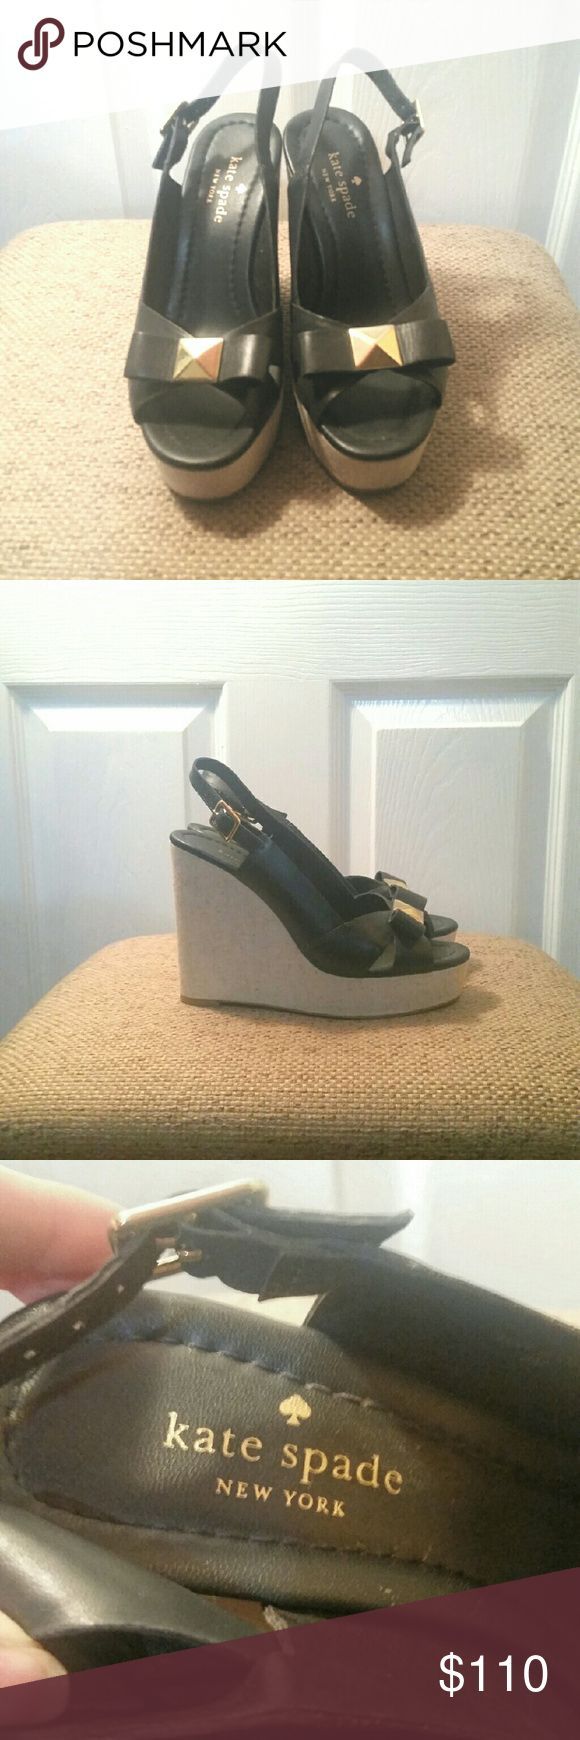 Kate Spade Navy Wedge Gold Bow Only worn once Kate Spade wedges navy blue with gold bow size 6. kate spade Shoes Wedges